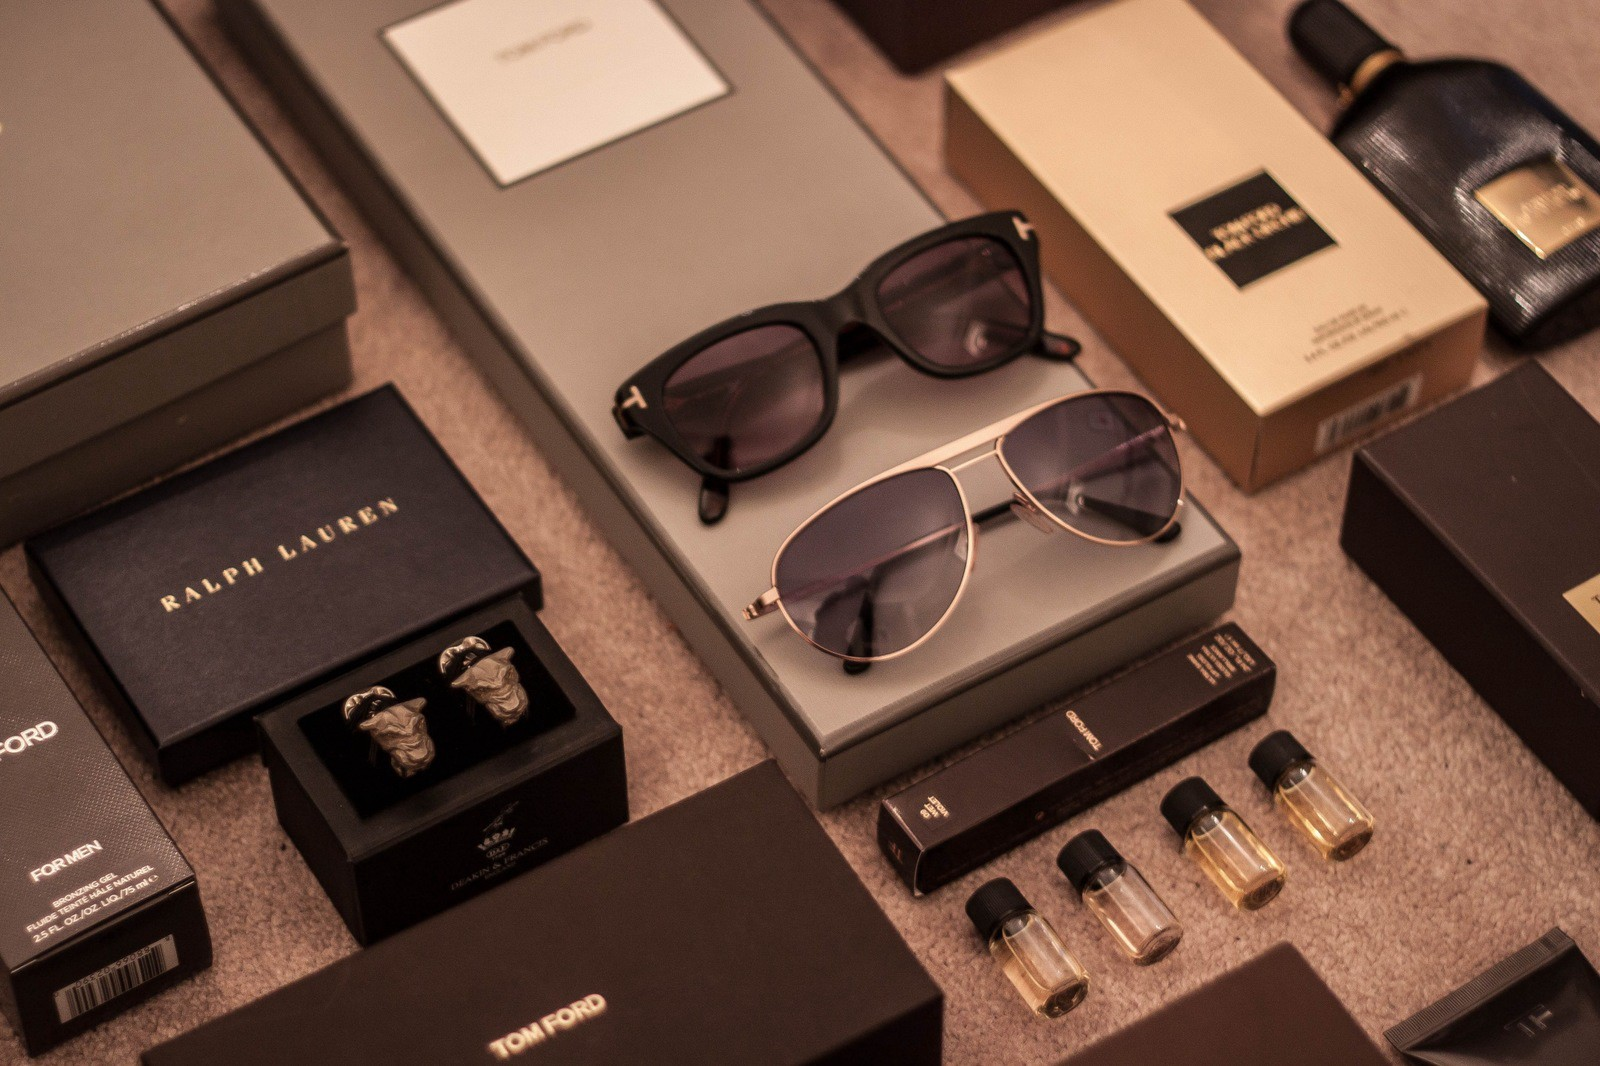 Pre-Owned Luxury Goods Market